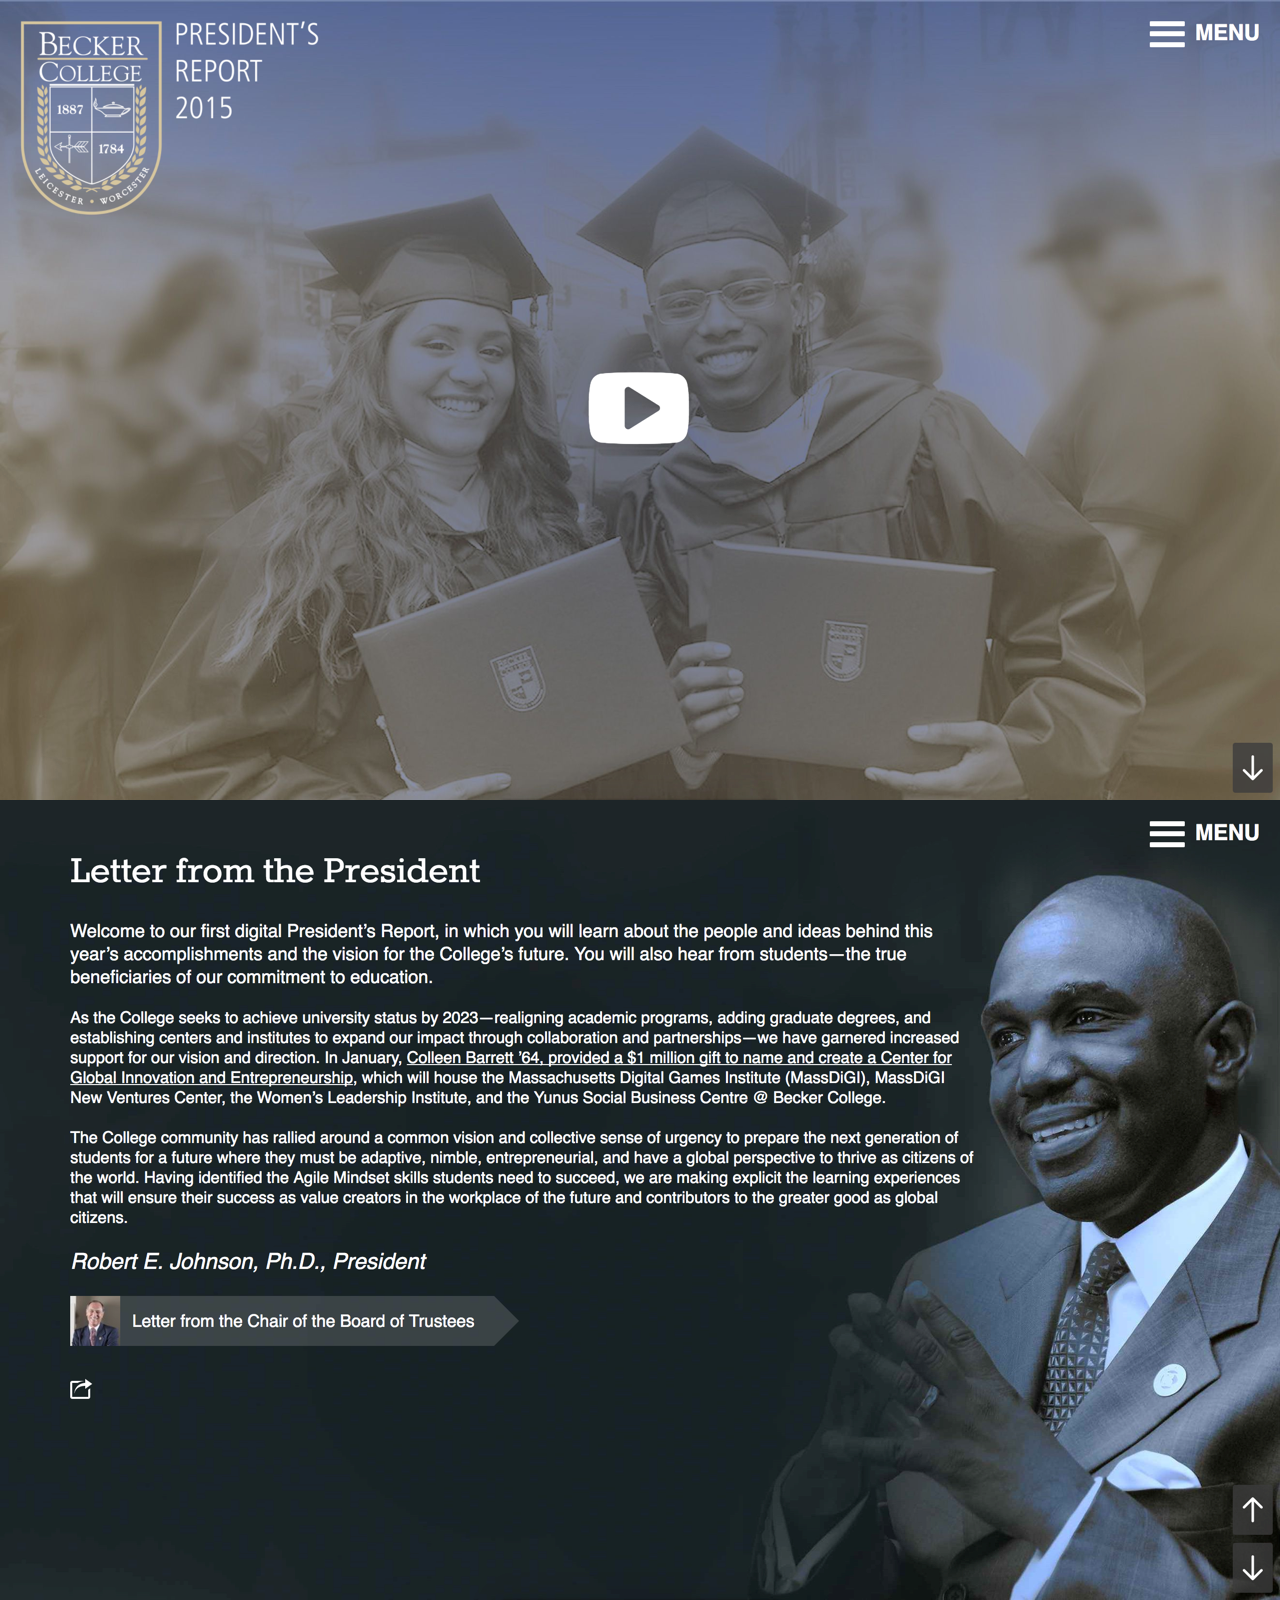 President's Report landing page